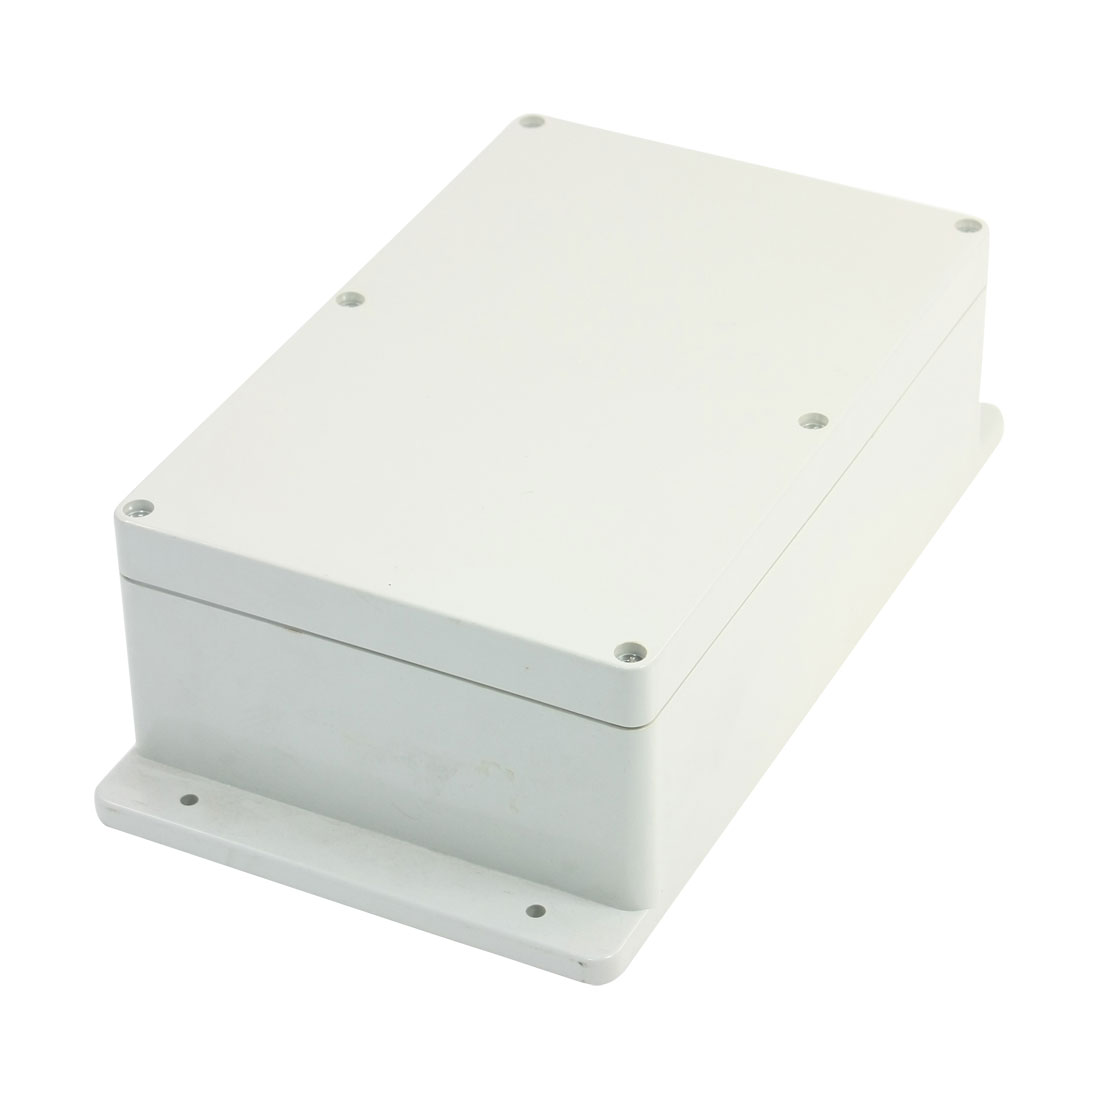 цена на UXCELL 230Mmx150mmx85mm Cable Connect Waterproof Plastic Case Junction Box